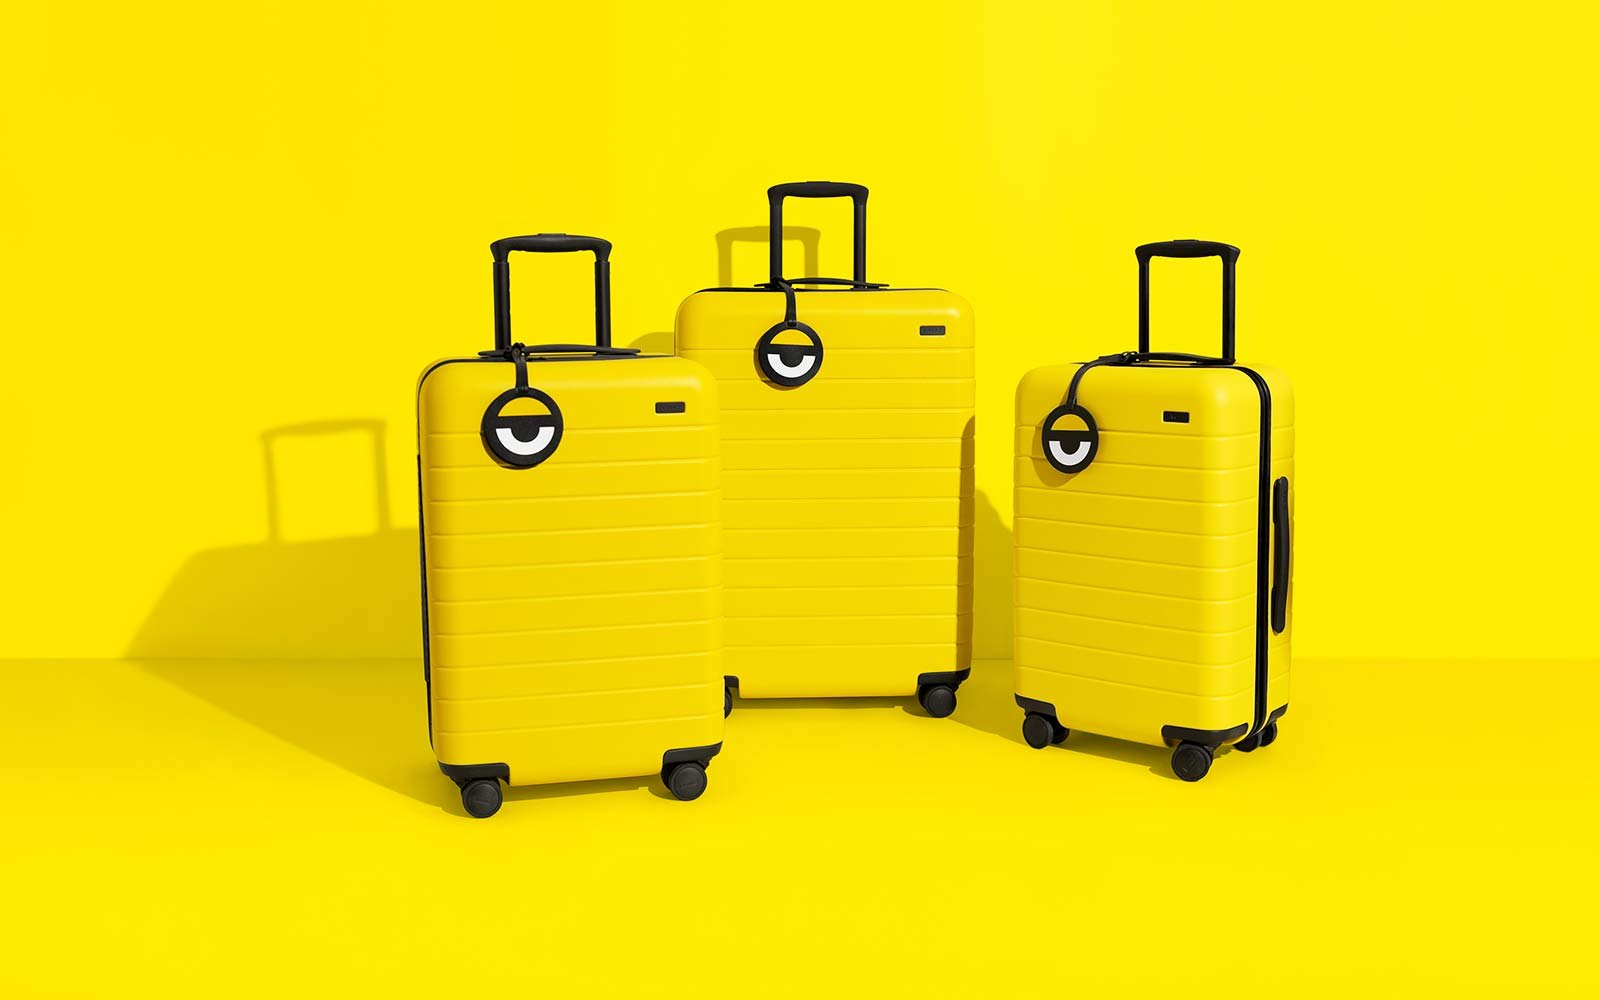 Away travel luggage Minions Despicable Me 3 luggage collaboration yellow style